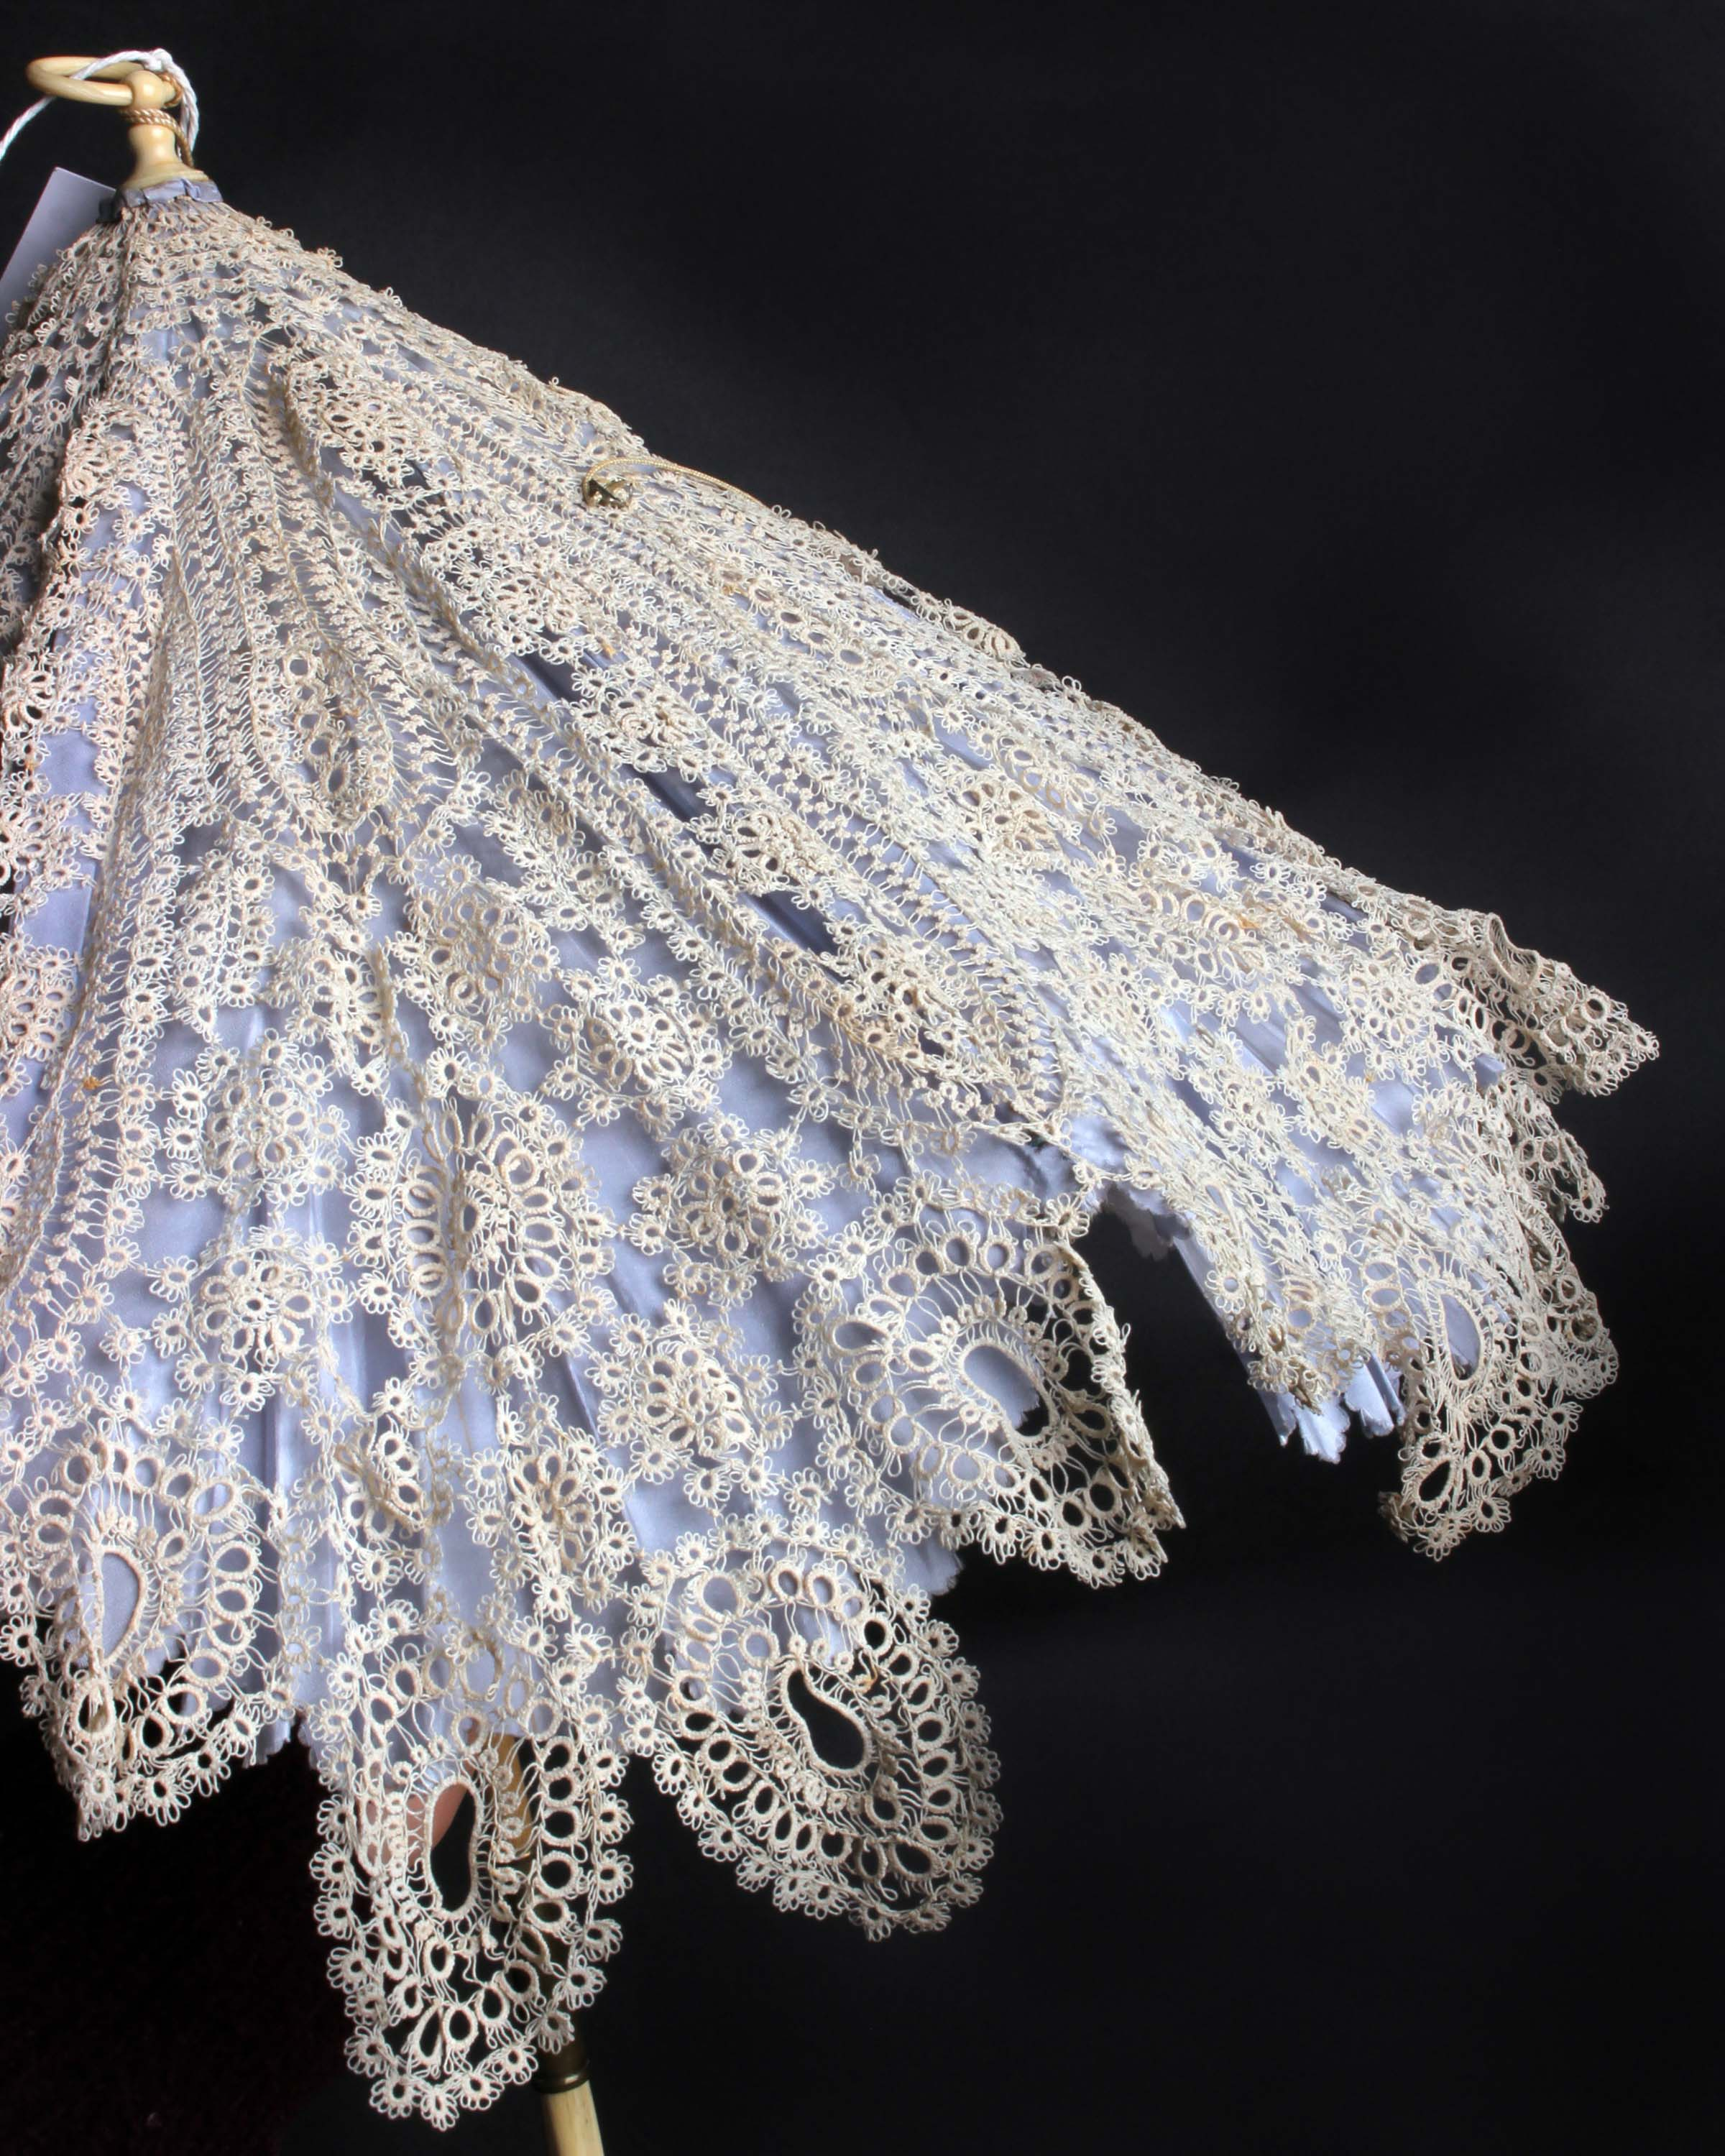 Lot 18 - A 19th Century pale blue silk lace covered hinged carriage parasol with an ivory handle, a length of